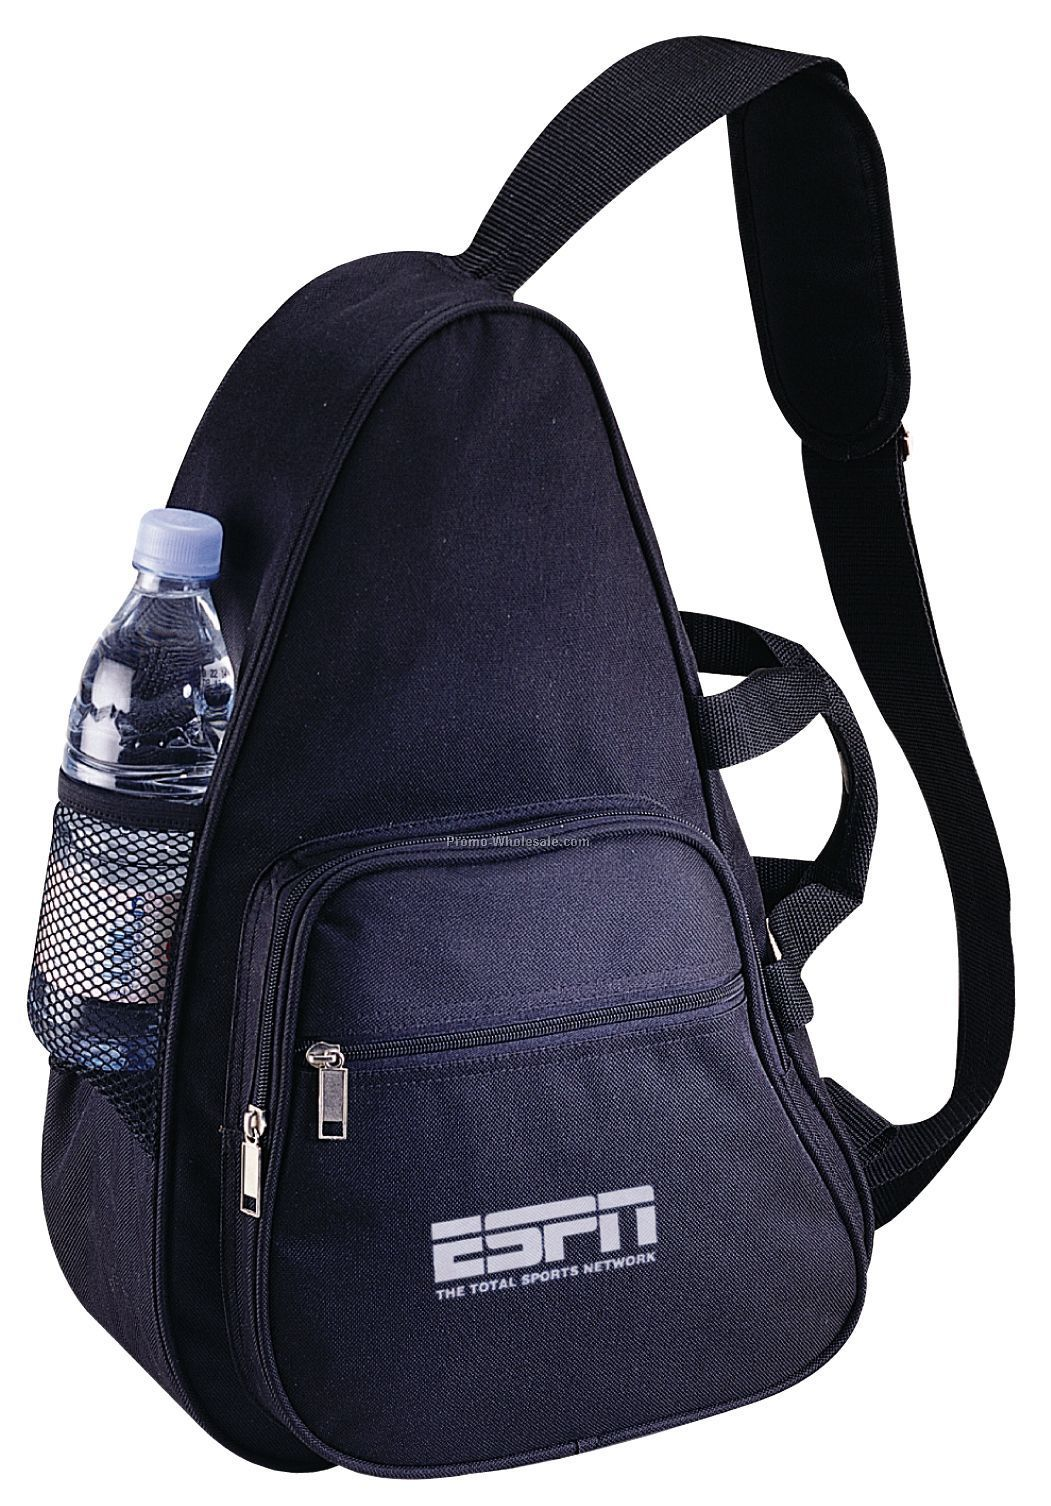 Multi Purpose Shoulder Bag / Backpack